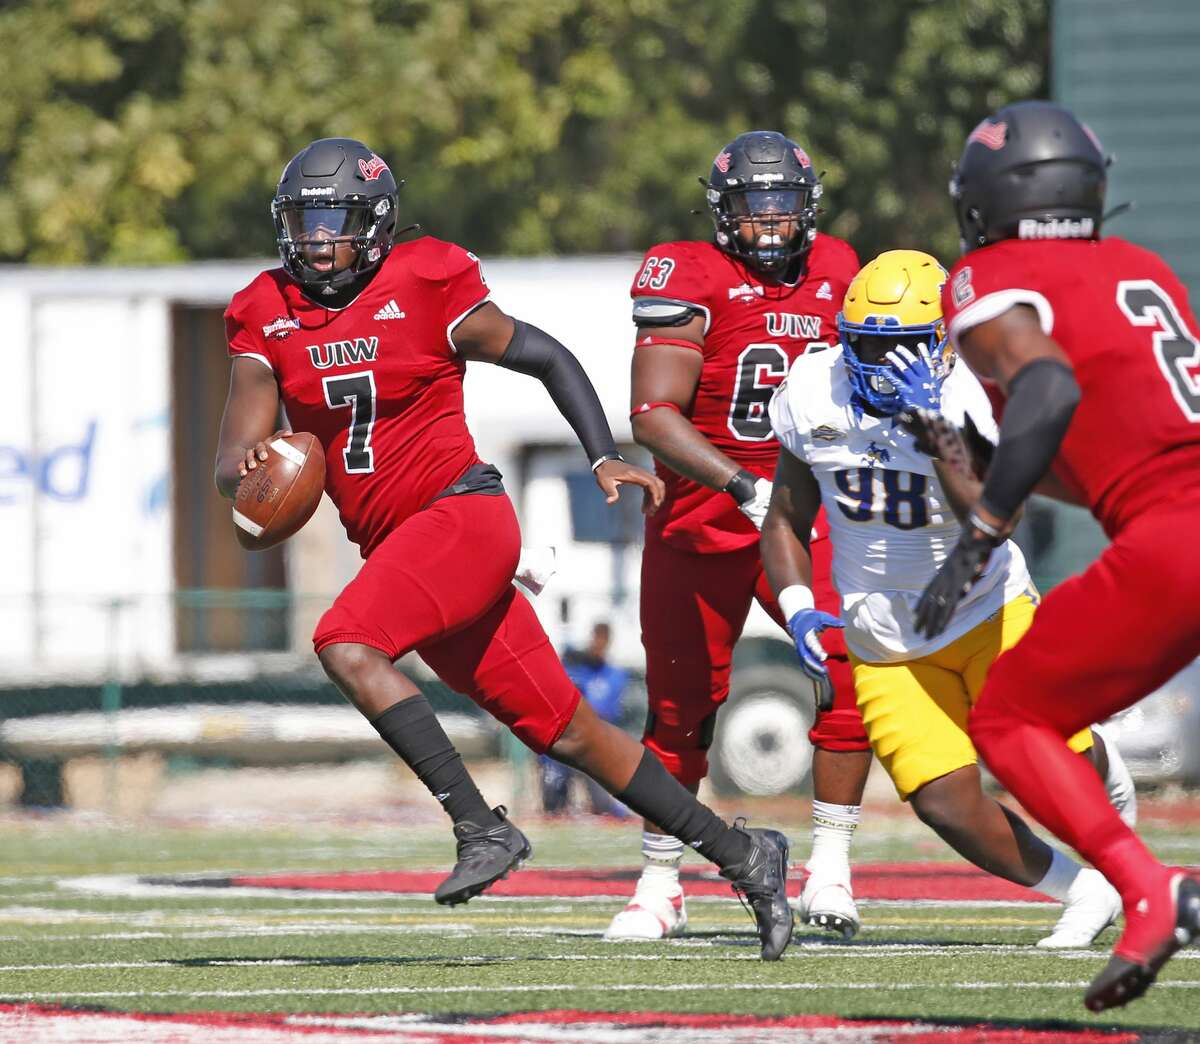 UIW quarterback Cameron Ward scrambles for yardage on Saturday, Sept. 25, 2021. Halftime score UIW 21 McNeese 0.